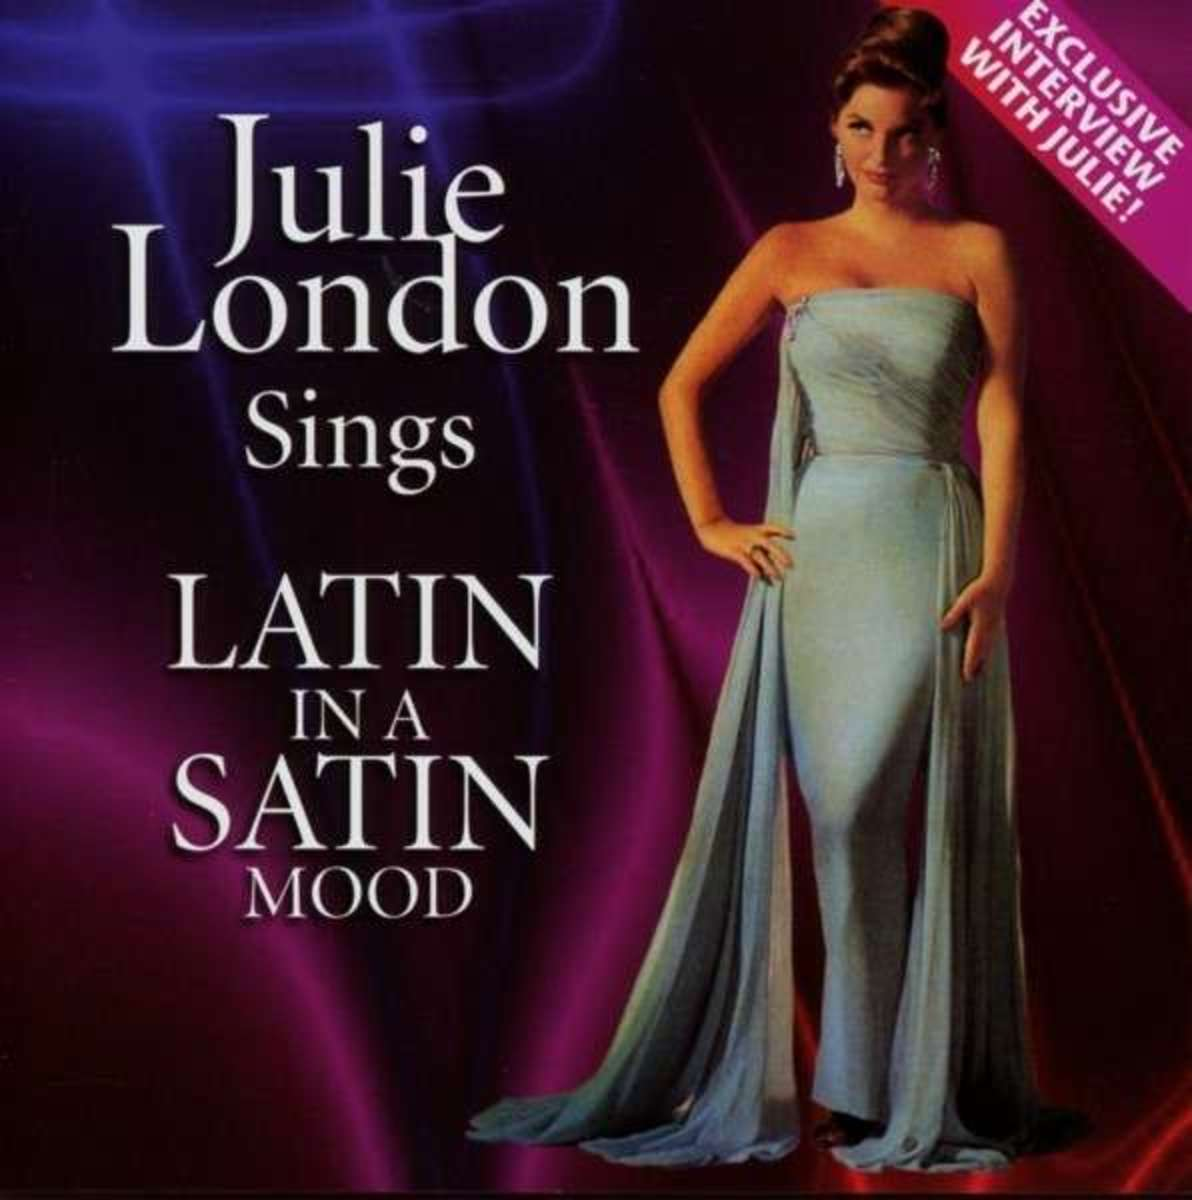 Julie London's 1963 album 'Latin in a Satin Mood' features 'Sway'